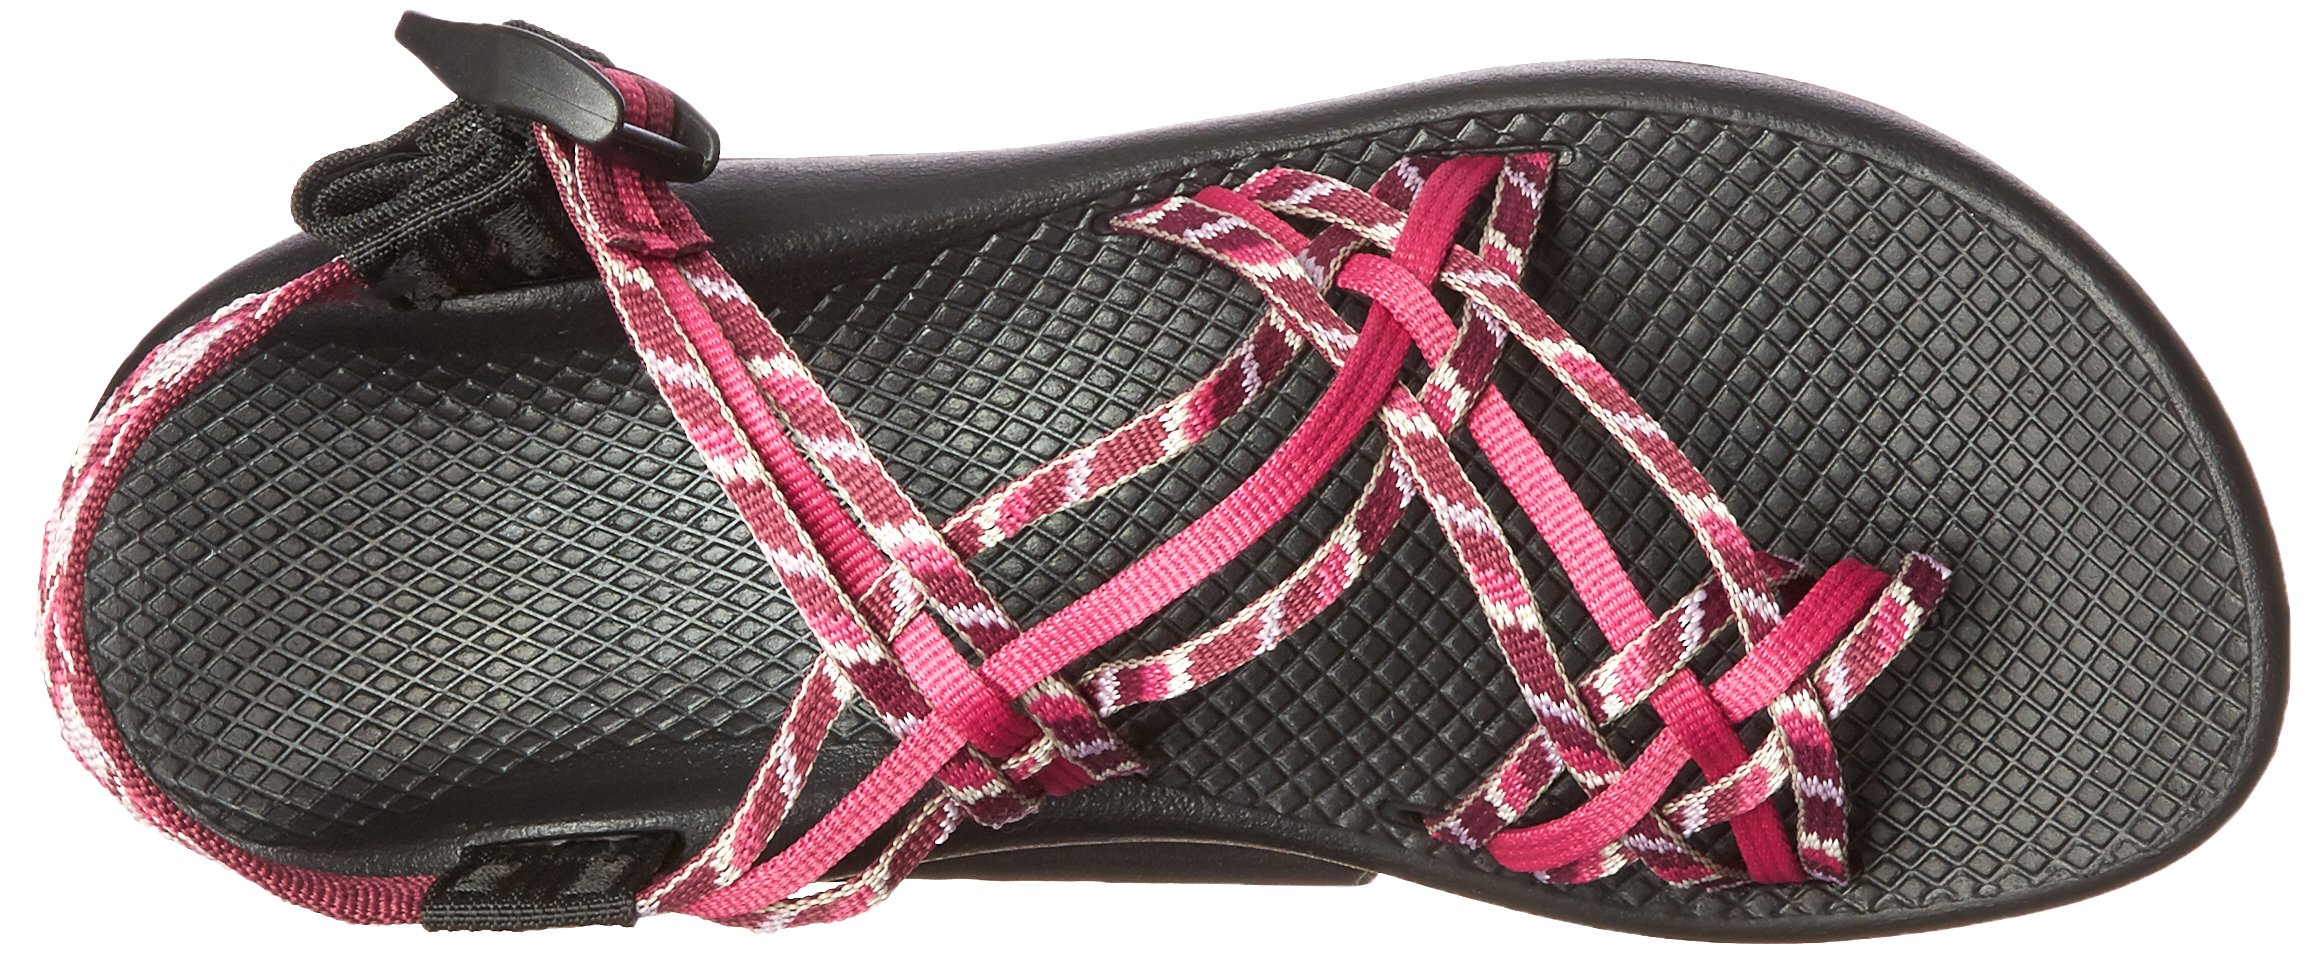 Chaco Women's ZX3 Yampa W Sandal, Clashing, 5 M US by Chaco (Image #8)